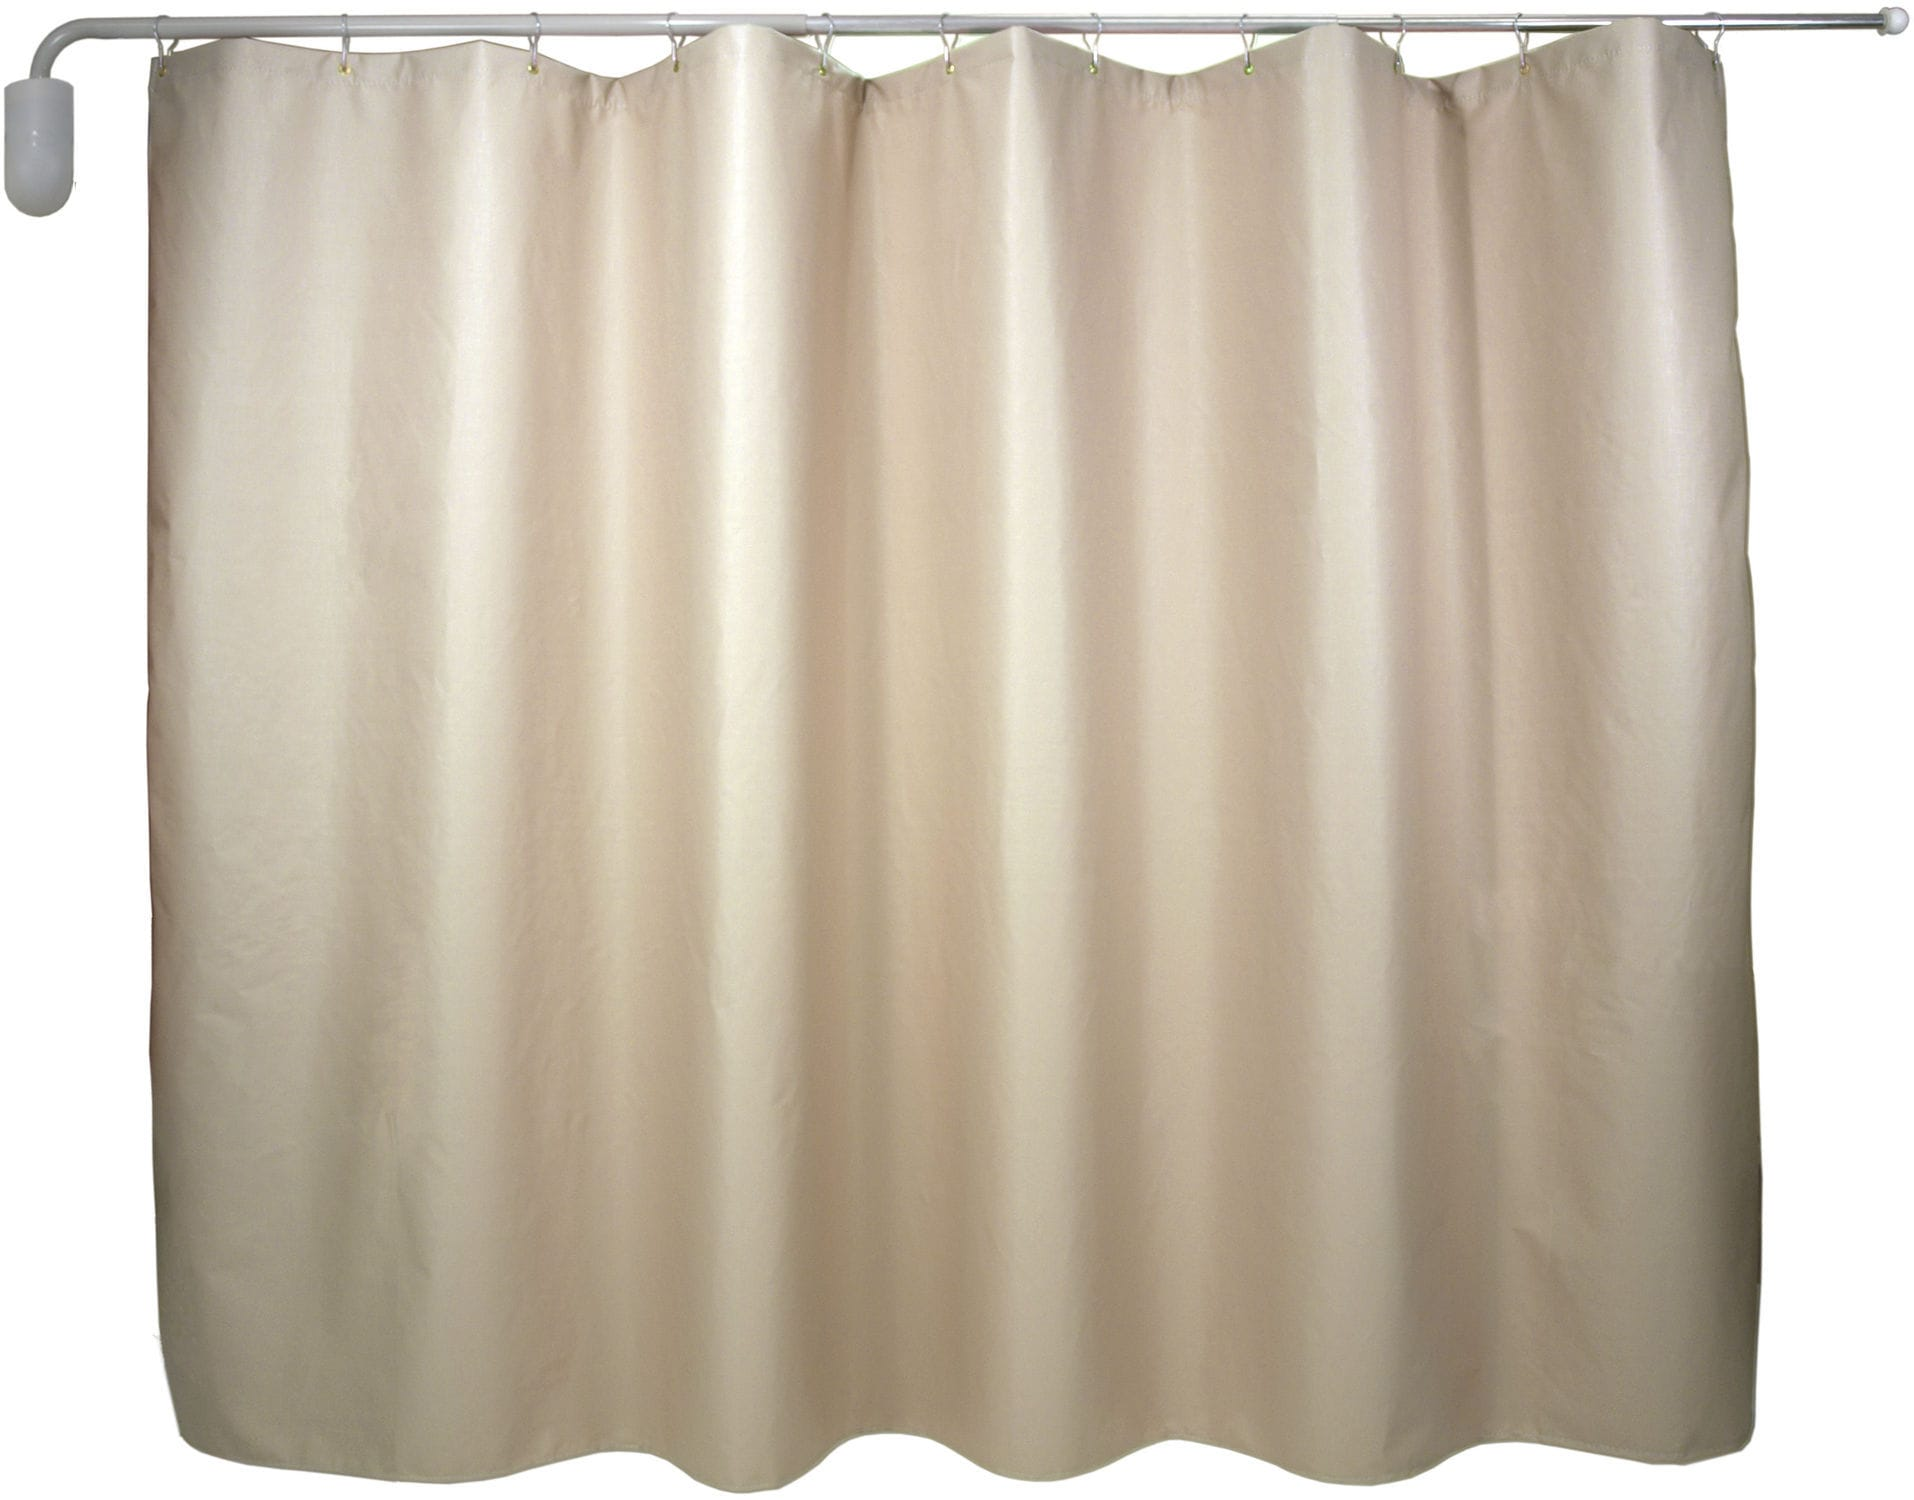 screen mounted curtains winco llc with prod mfg hospital wall panel product curtain fixed